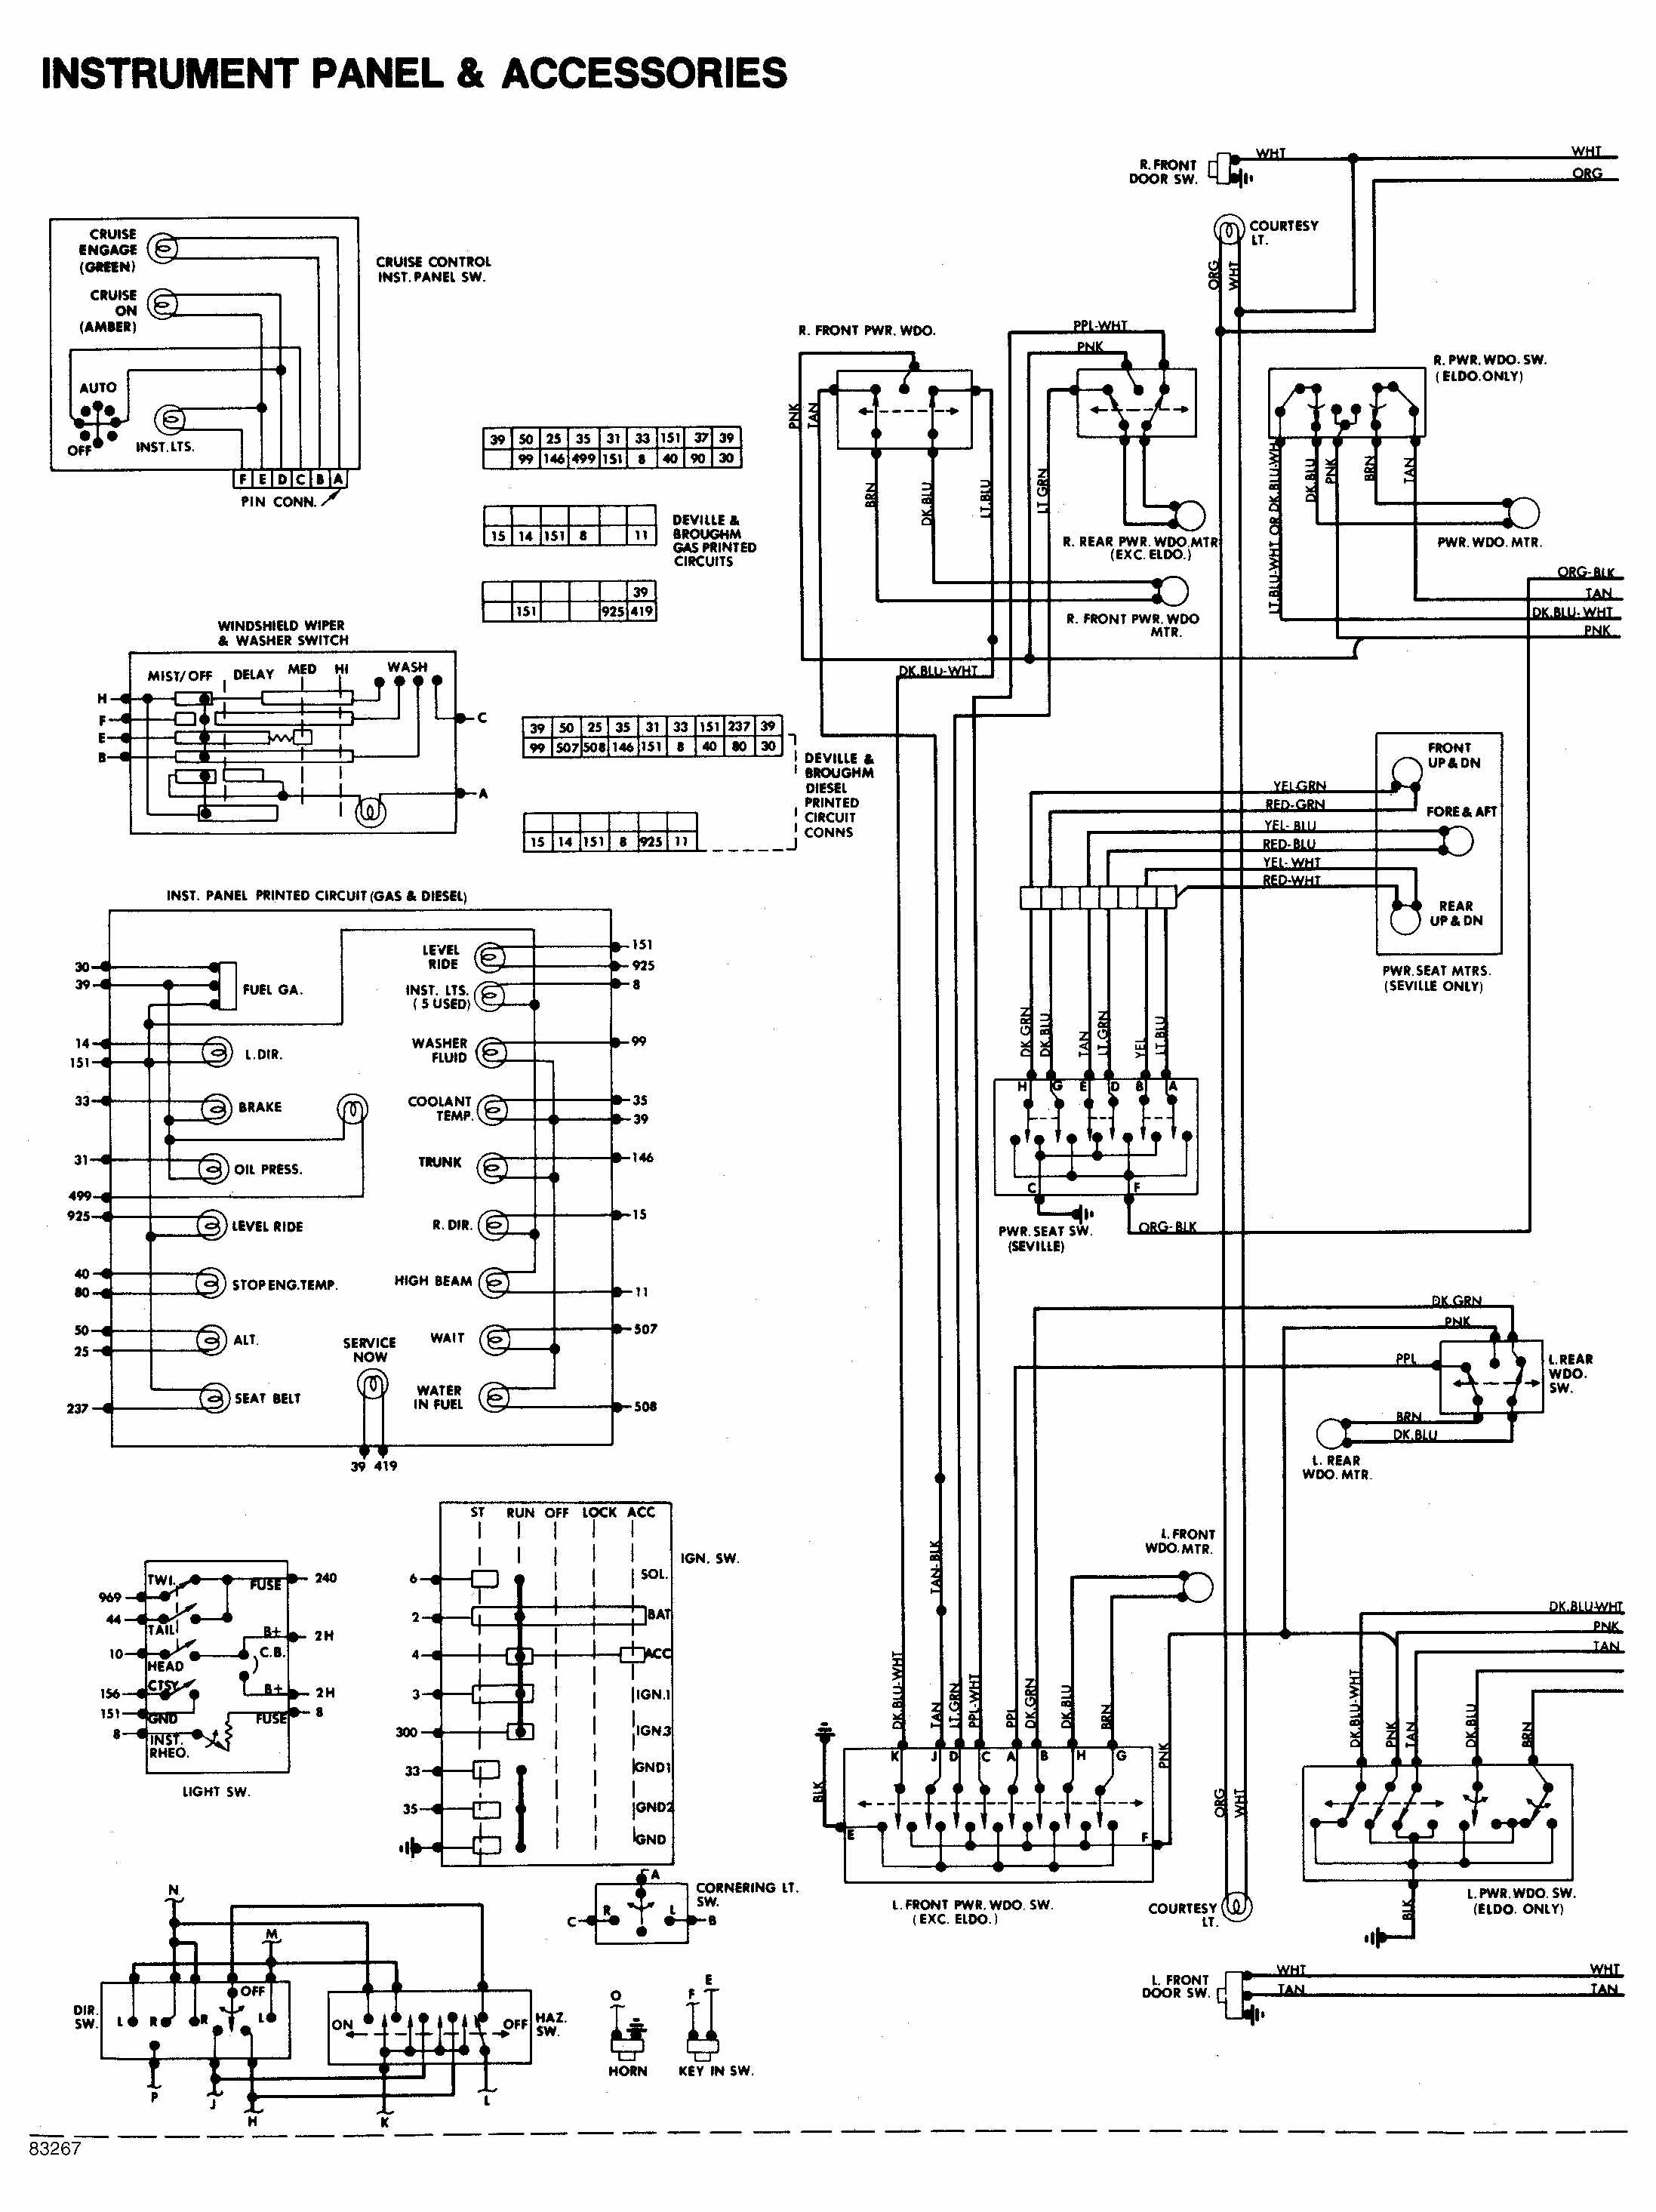 instrument panel and accessories wiring diagram of 1984 cadillac deville gm wiring diagrams 95 98 gm truck wiring diagrams \u2022 wiring 94 Ford Mustang Coupe Fuse Box at gsmx.co